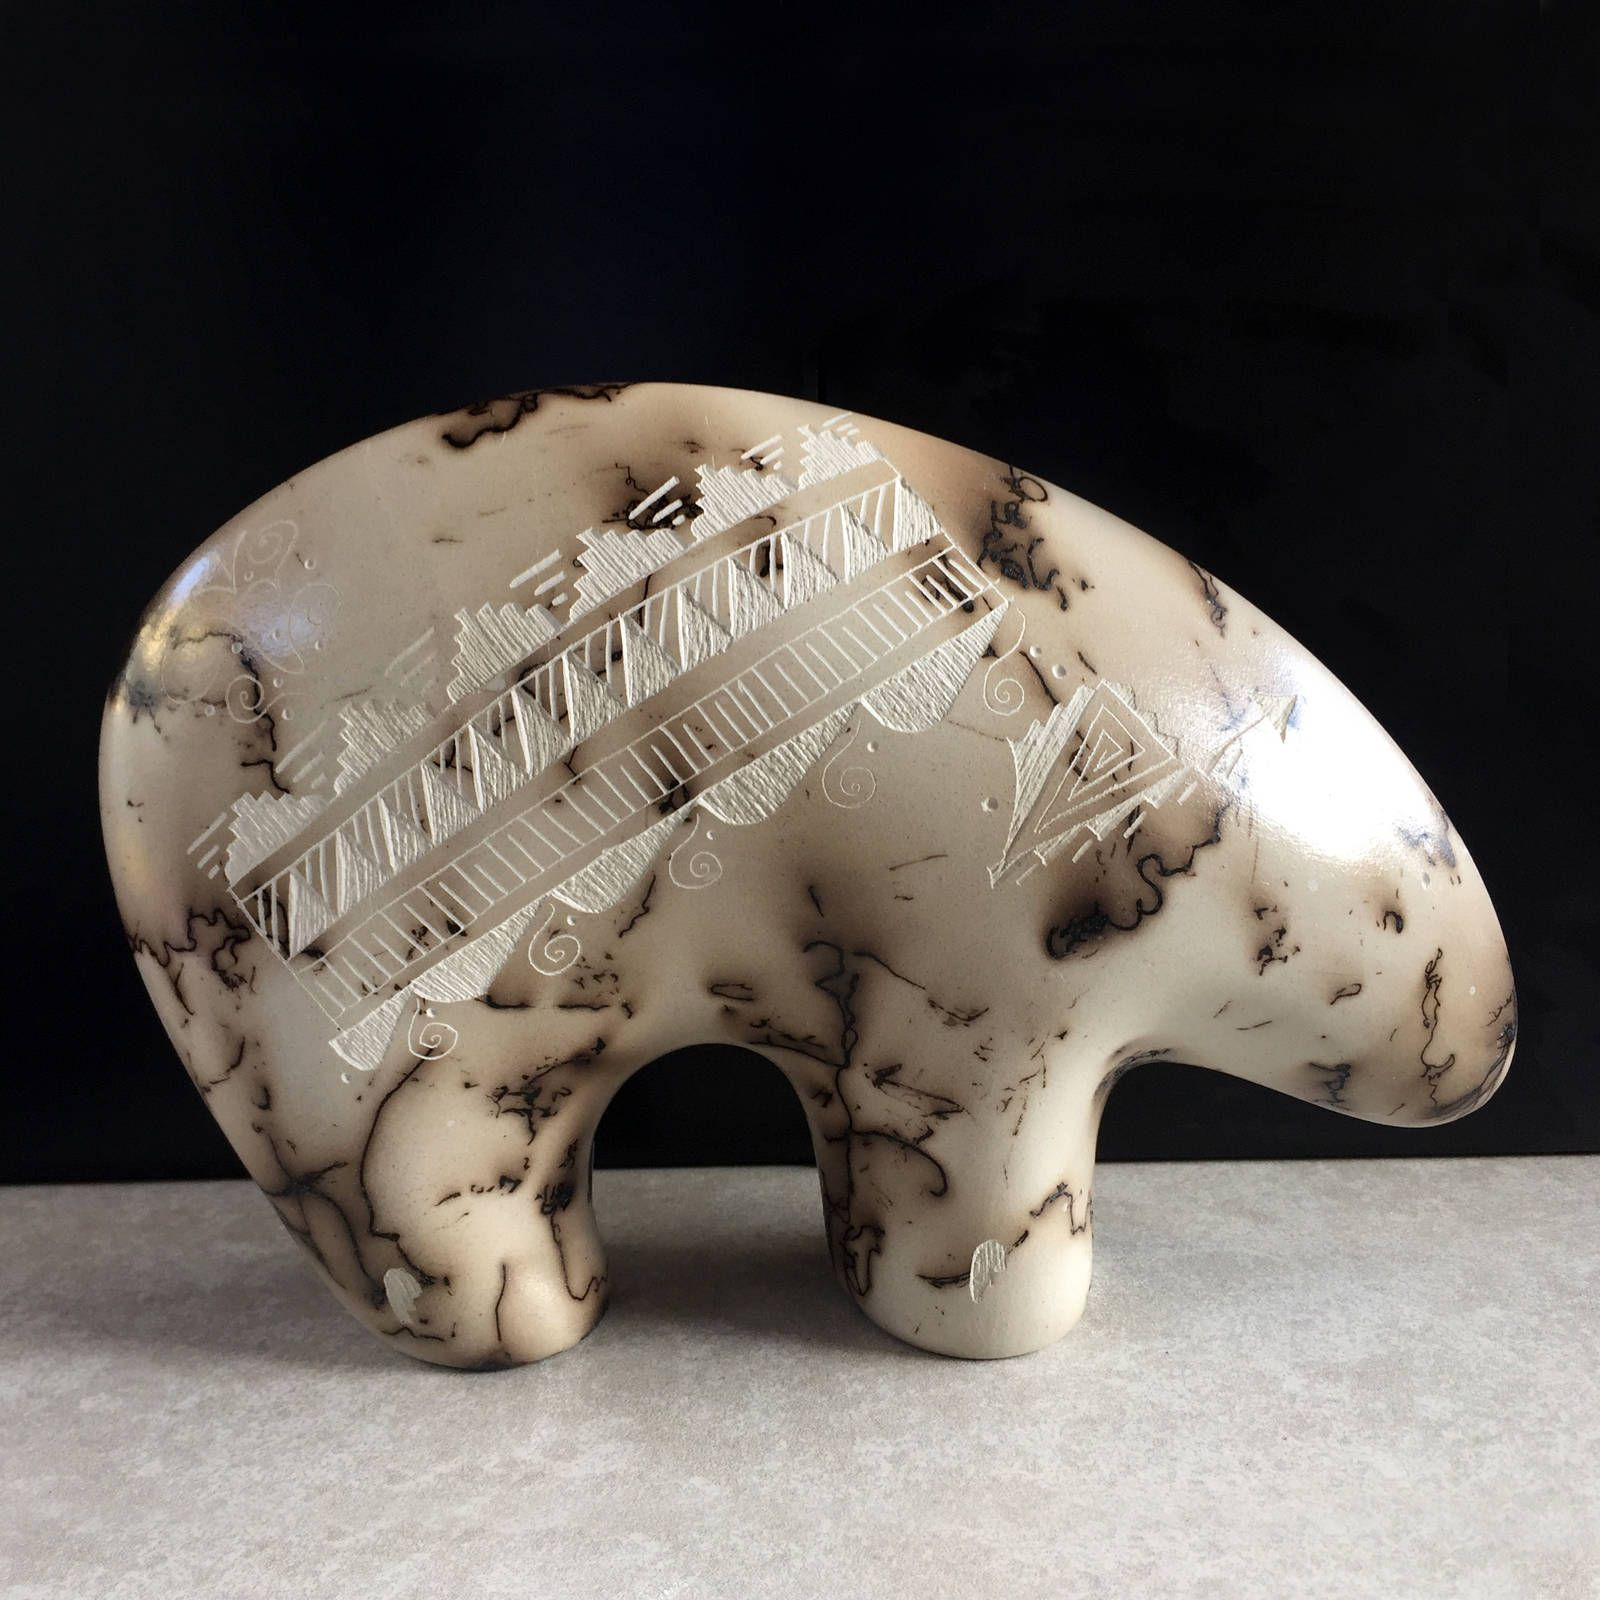 Vintage carved stone sheep ram sculpture navajo native american